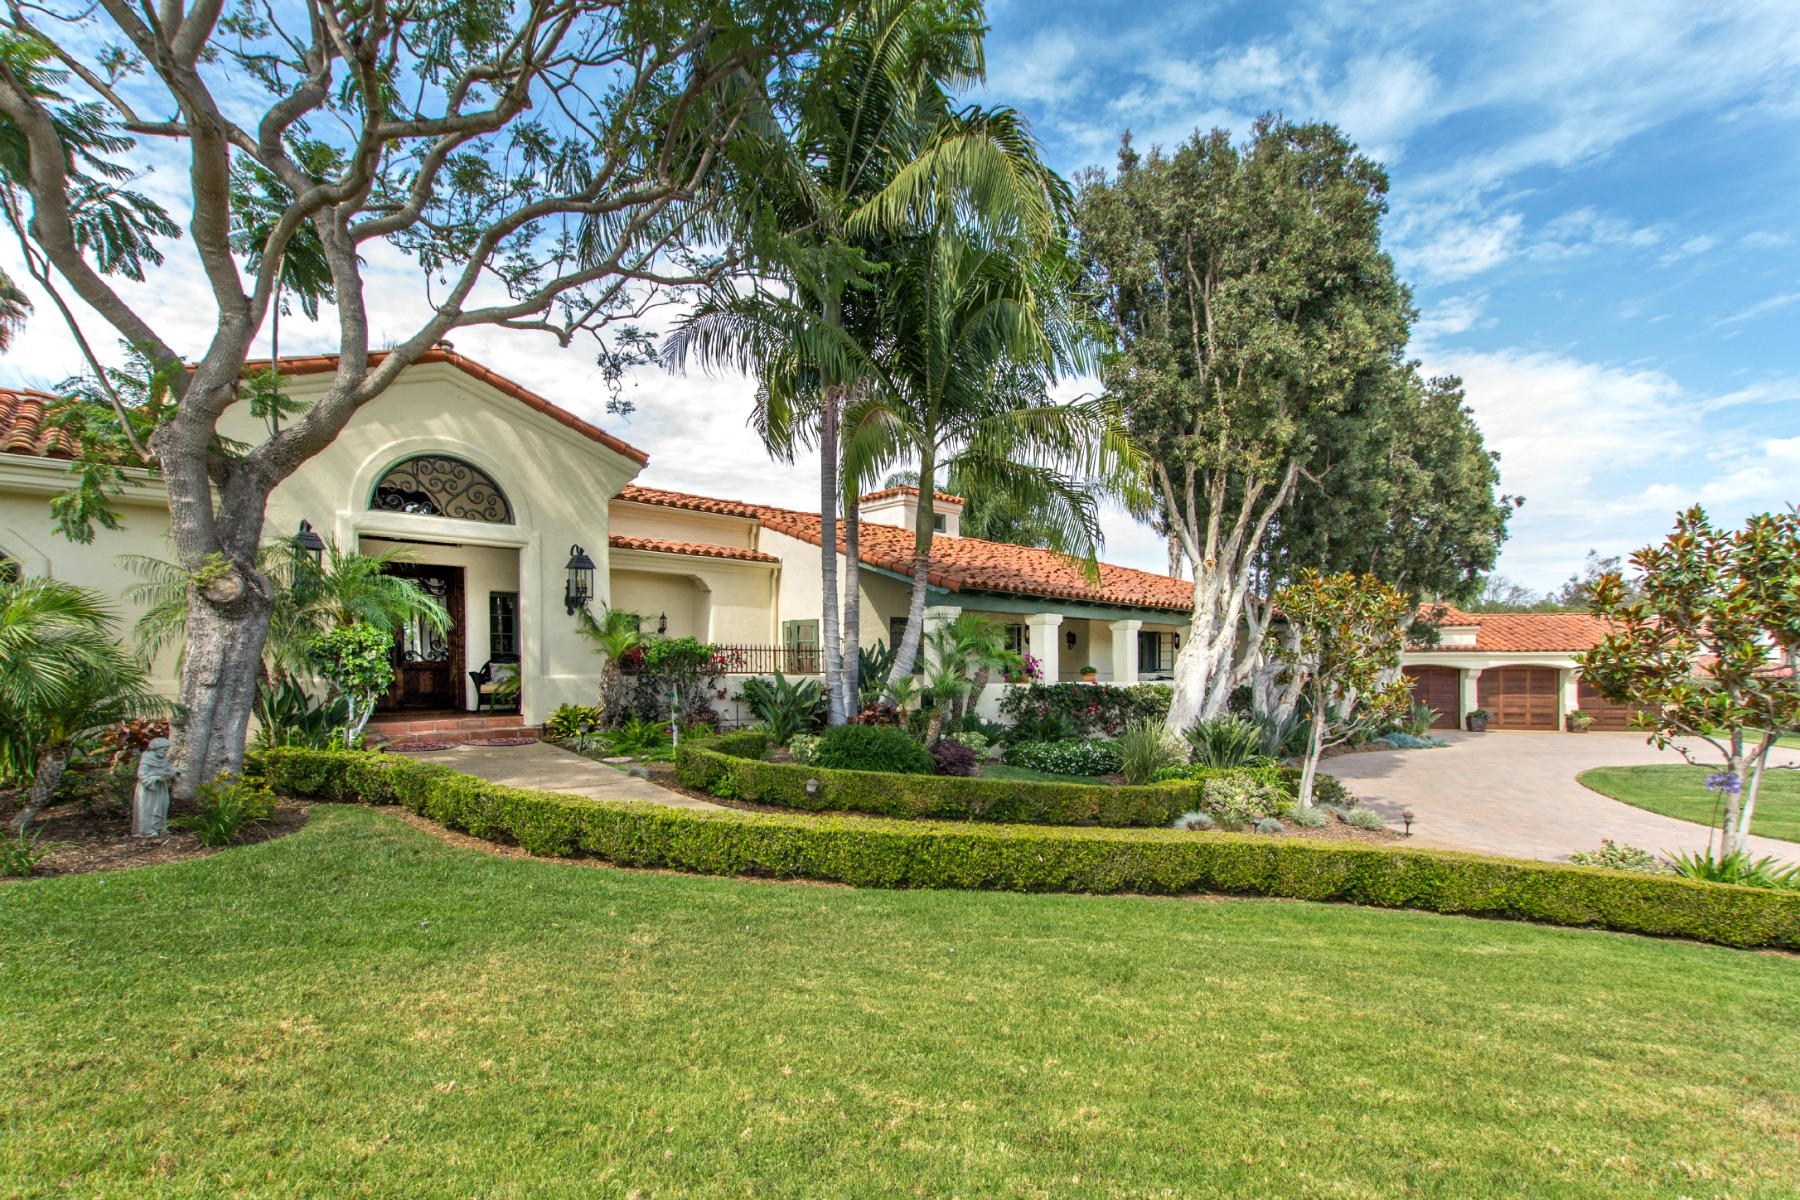 Single Family Home for Sale at 16896 Via Los Farolitos Rancho Santa Fe, California 92067 United States